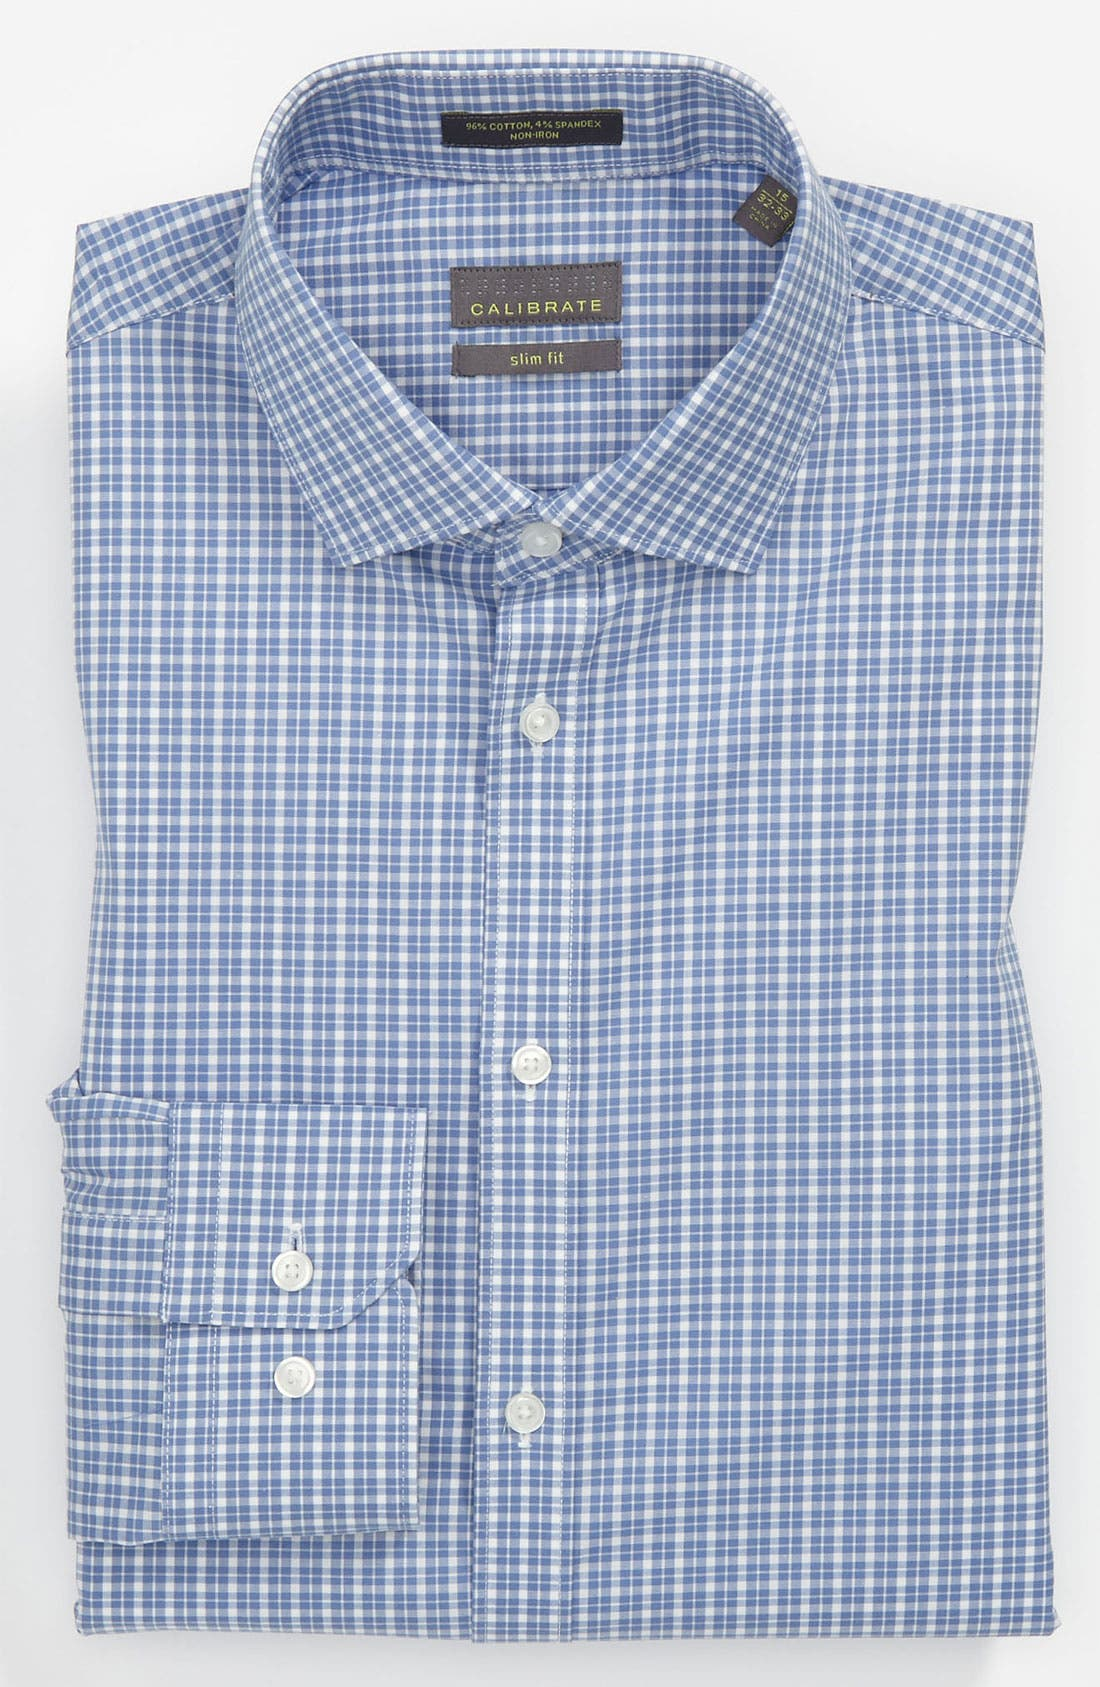 Alternate Image 1 Selected - Calibrate Slim Fit Non-Iron Dress Shirt